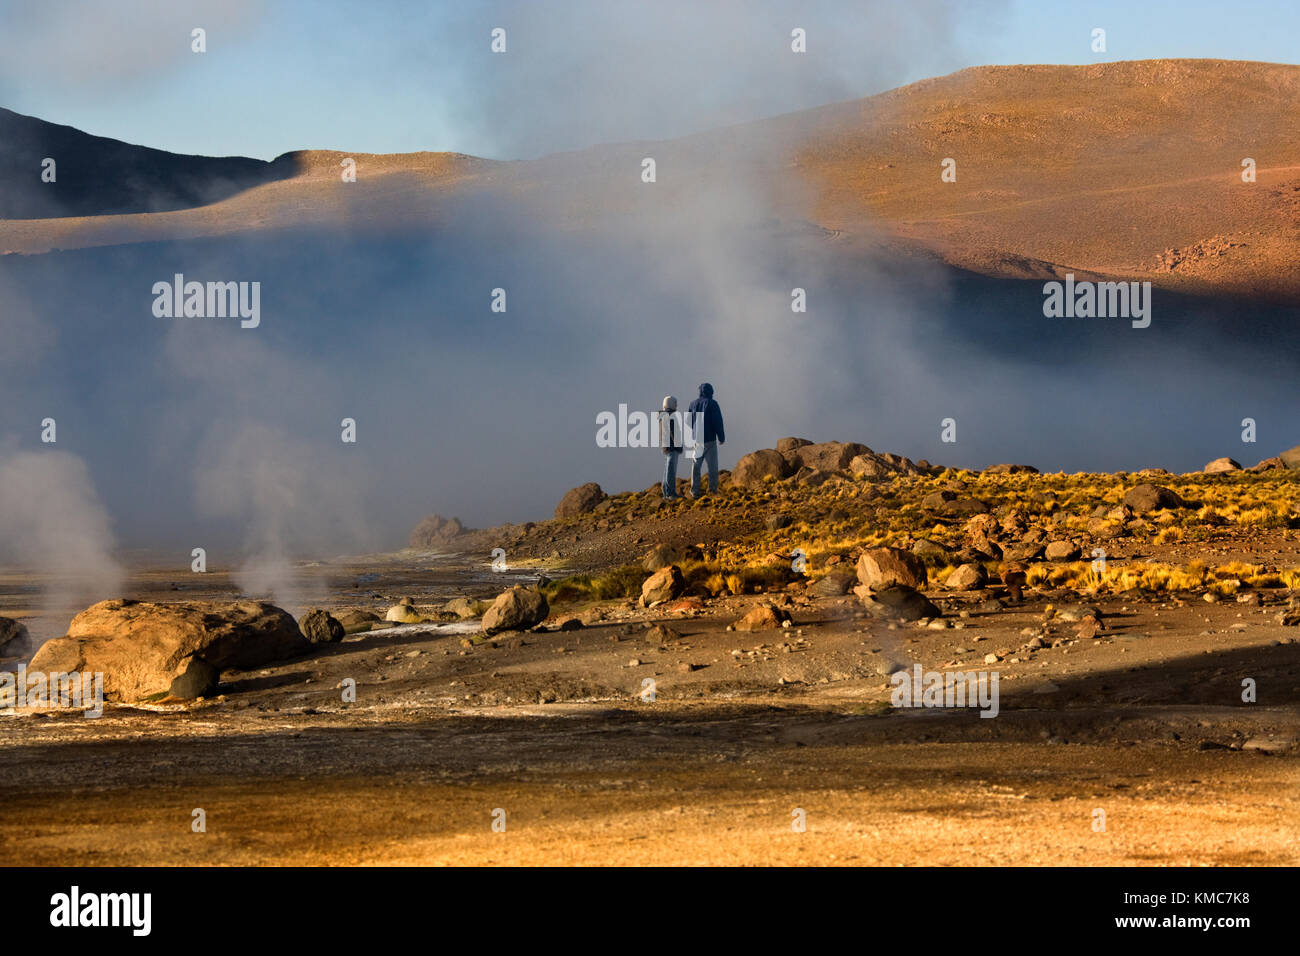 Adventure tourists at the Geo-thermal steam vents at El Tatio Geyser Field. El Tatio is located within the Andes - Stock Image